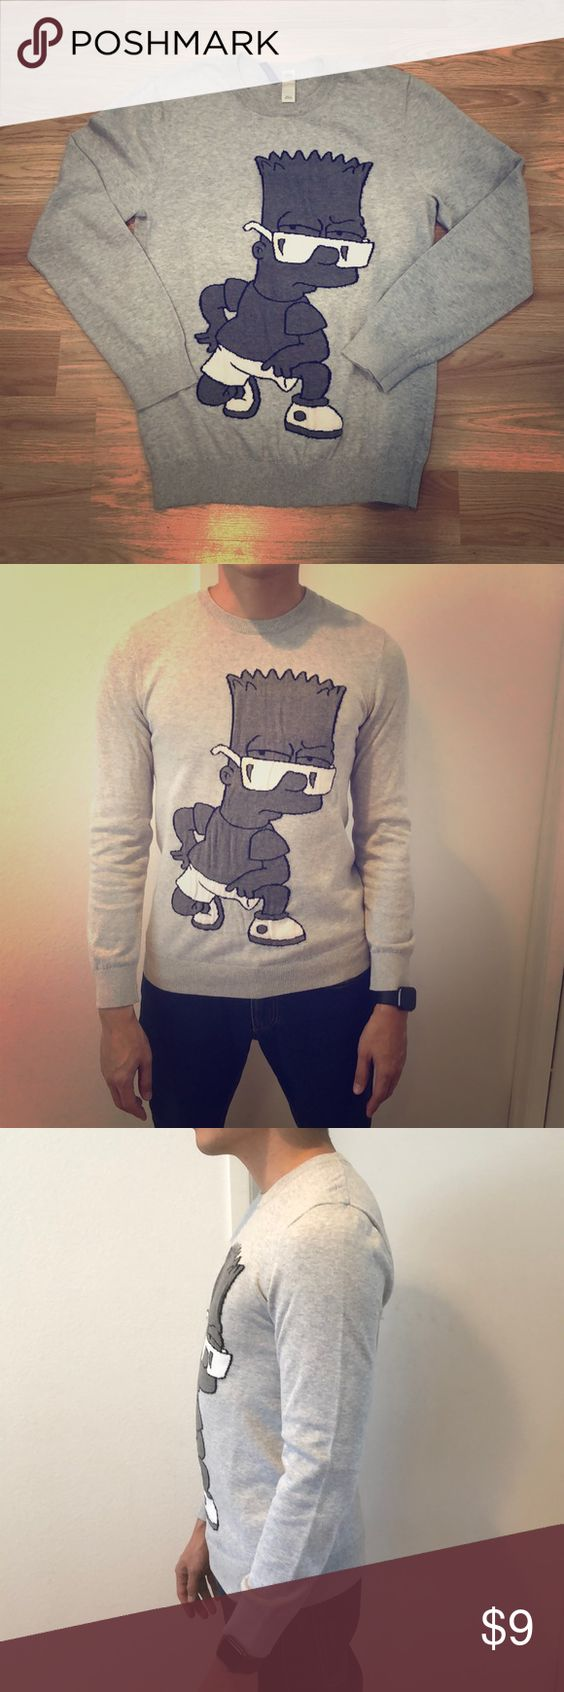 Bart Simpson Sweater Bart Simpson Crew Neck Sweater There Is A Stain In Barts Glasses See Picture 5 For Close Up H M Sweaters Clothes Design Fashion Sweaters [ 1692 x 564 Pixel ]